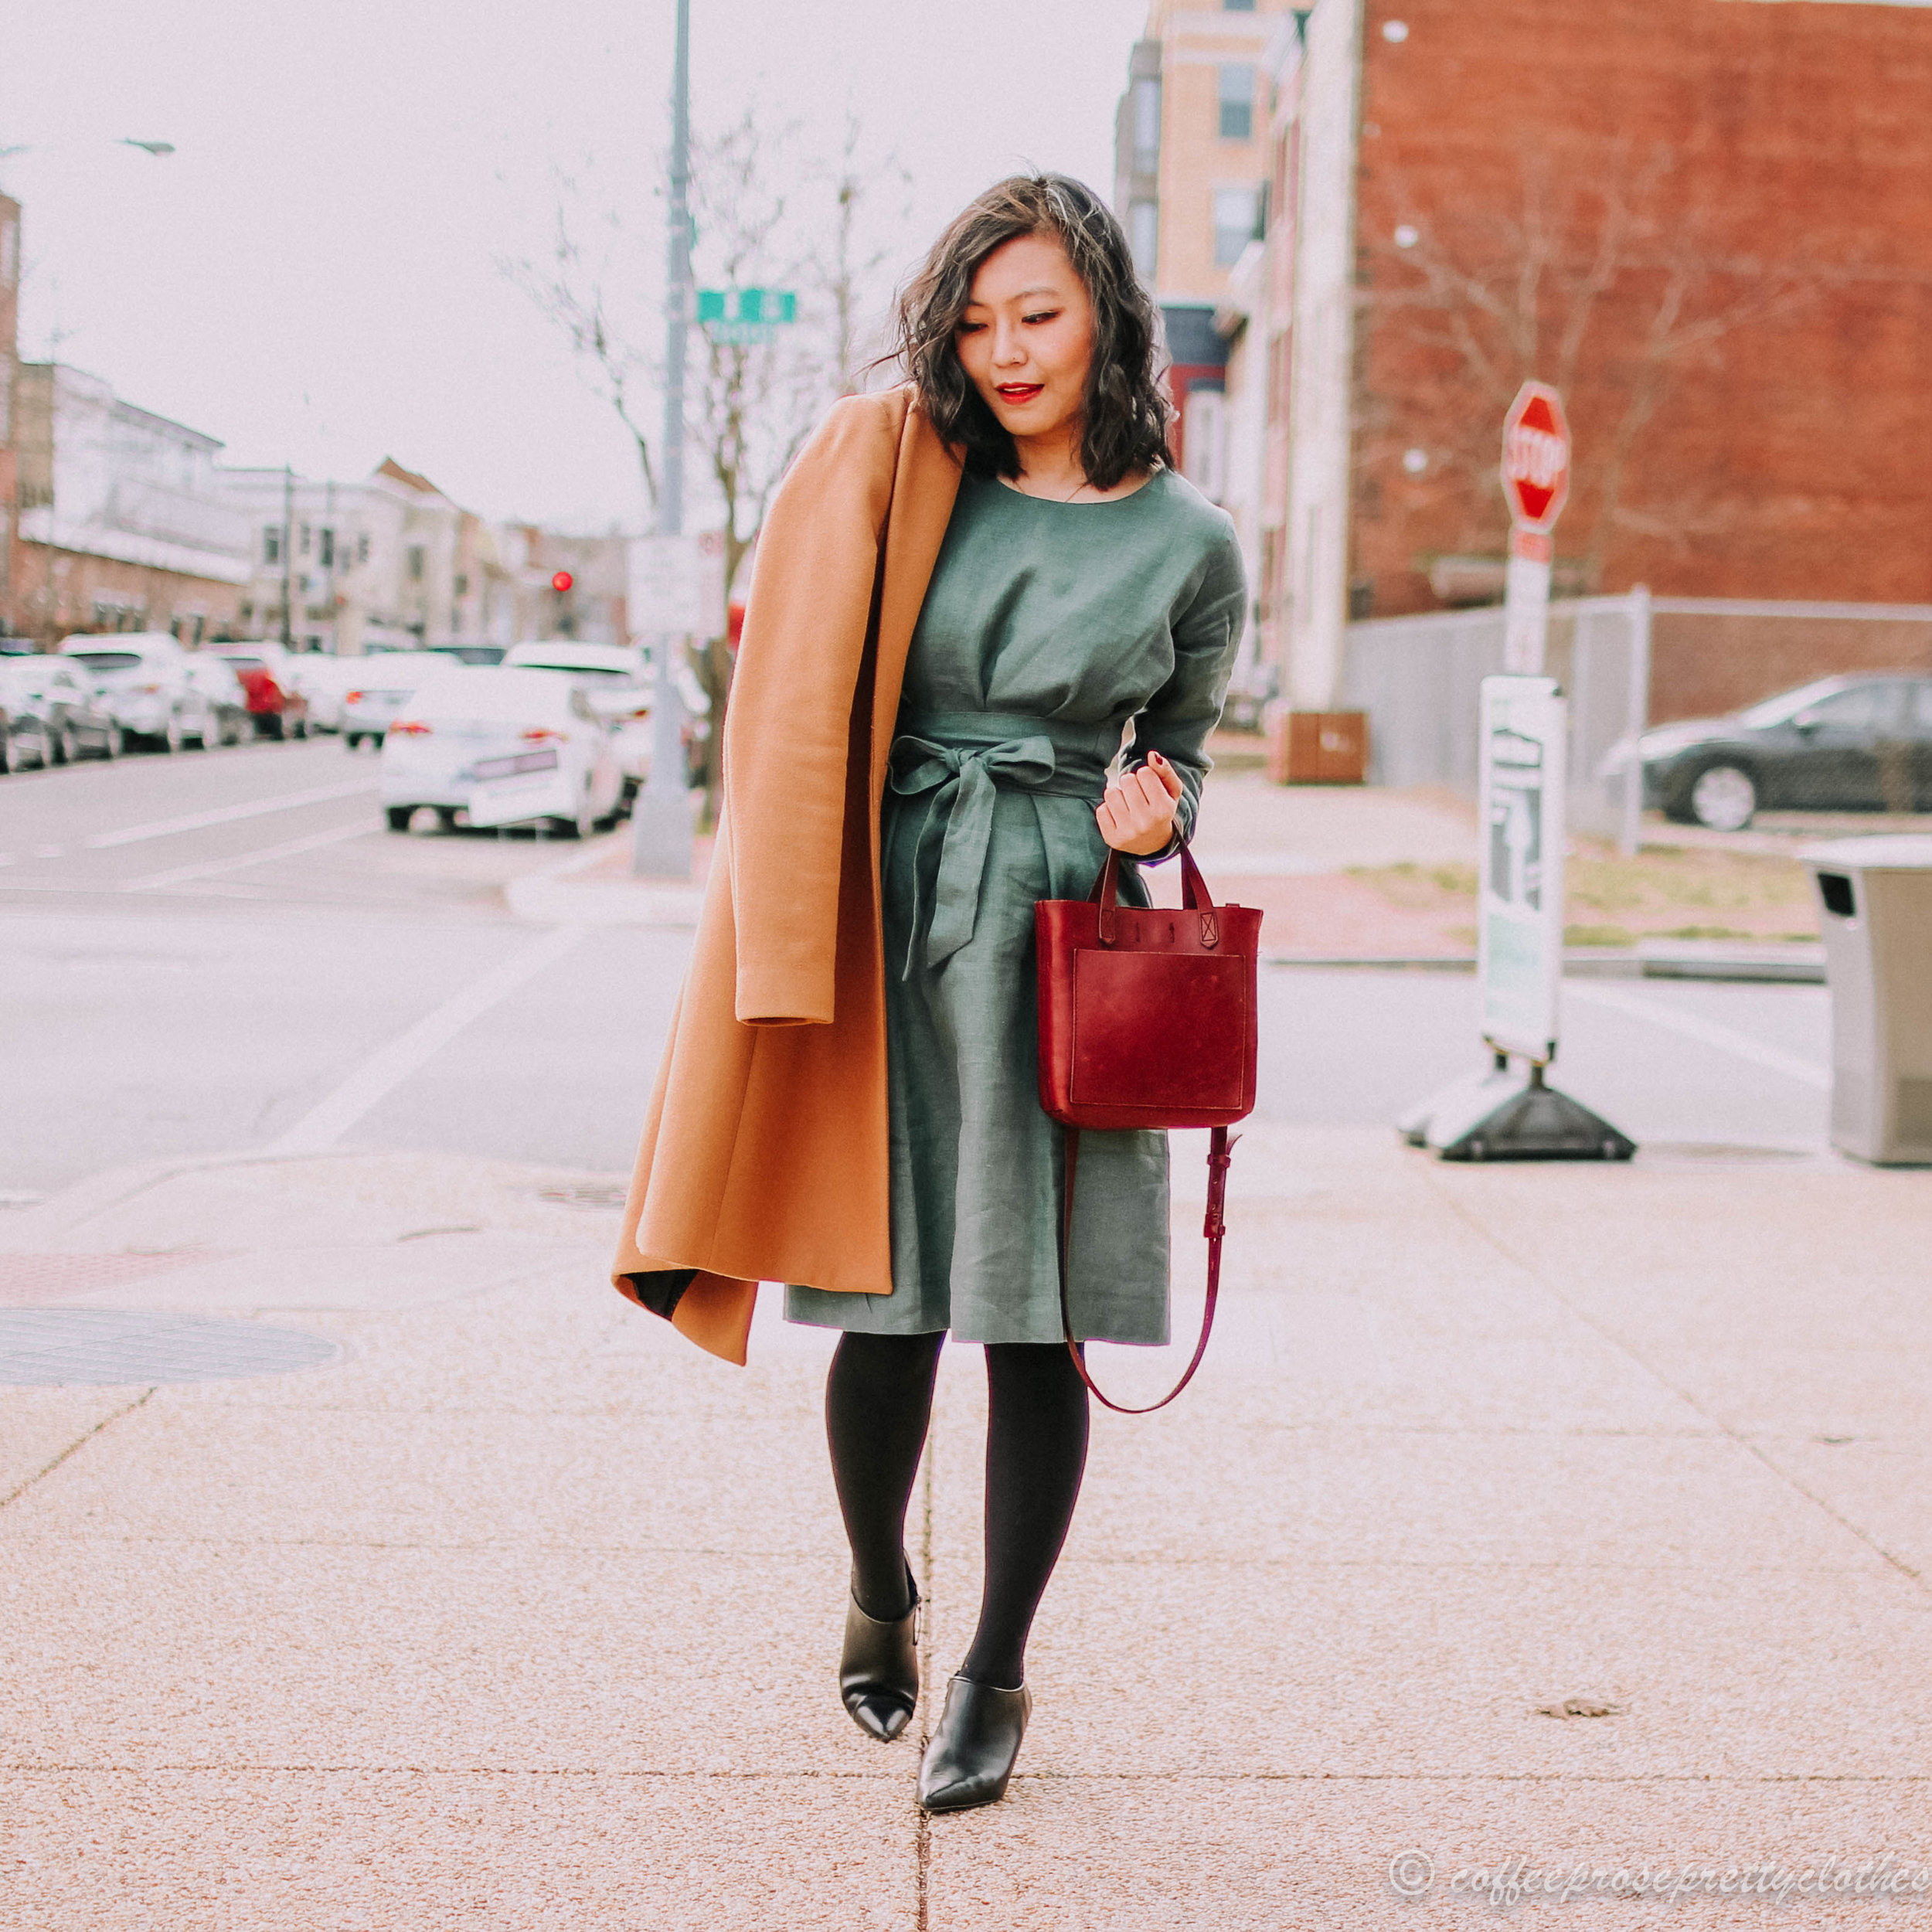 Linen Dress and Structured Coat